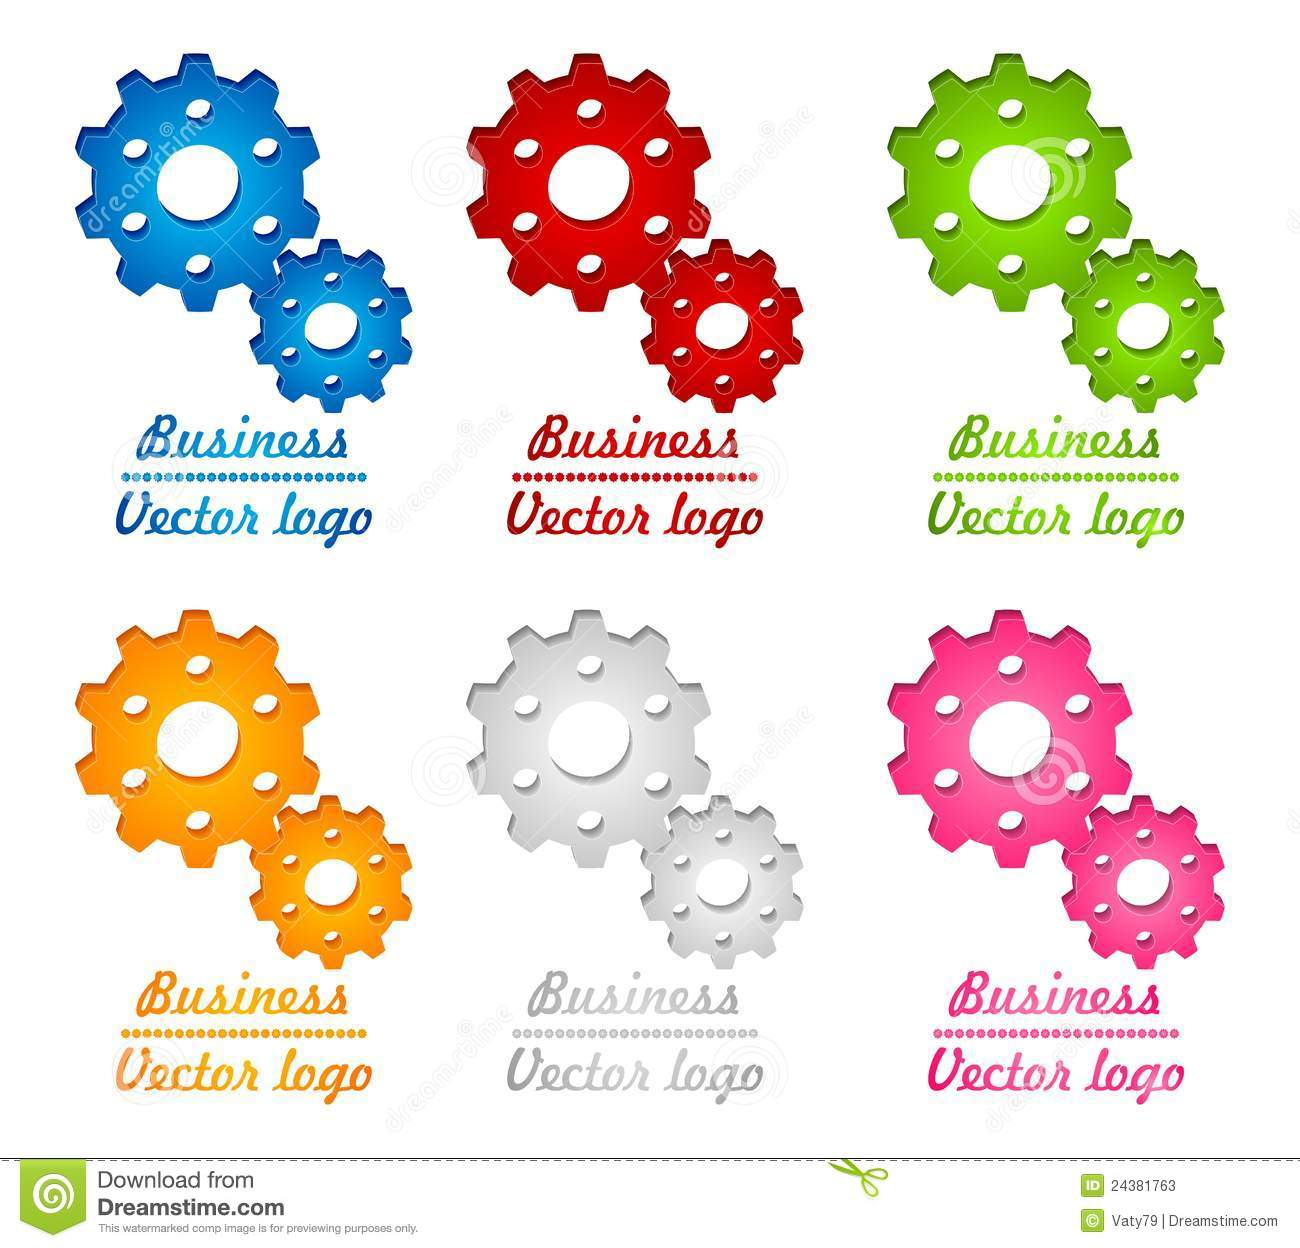 3D Colored Gear Logo Stock Vector. Illustration Of Concept